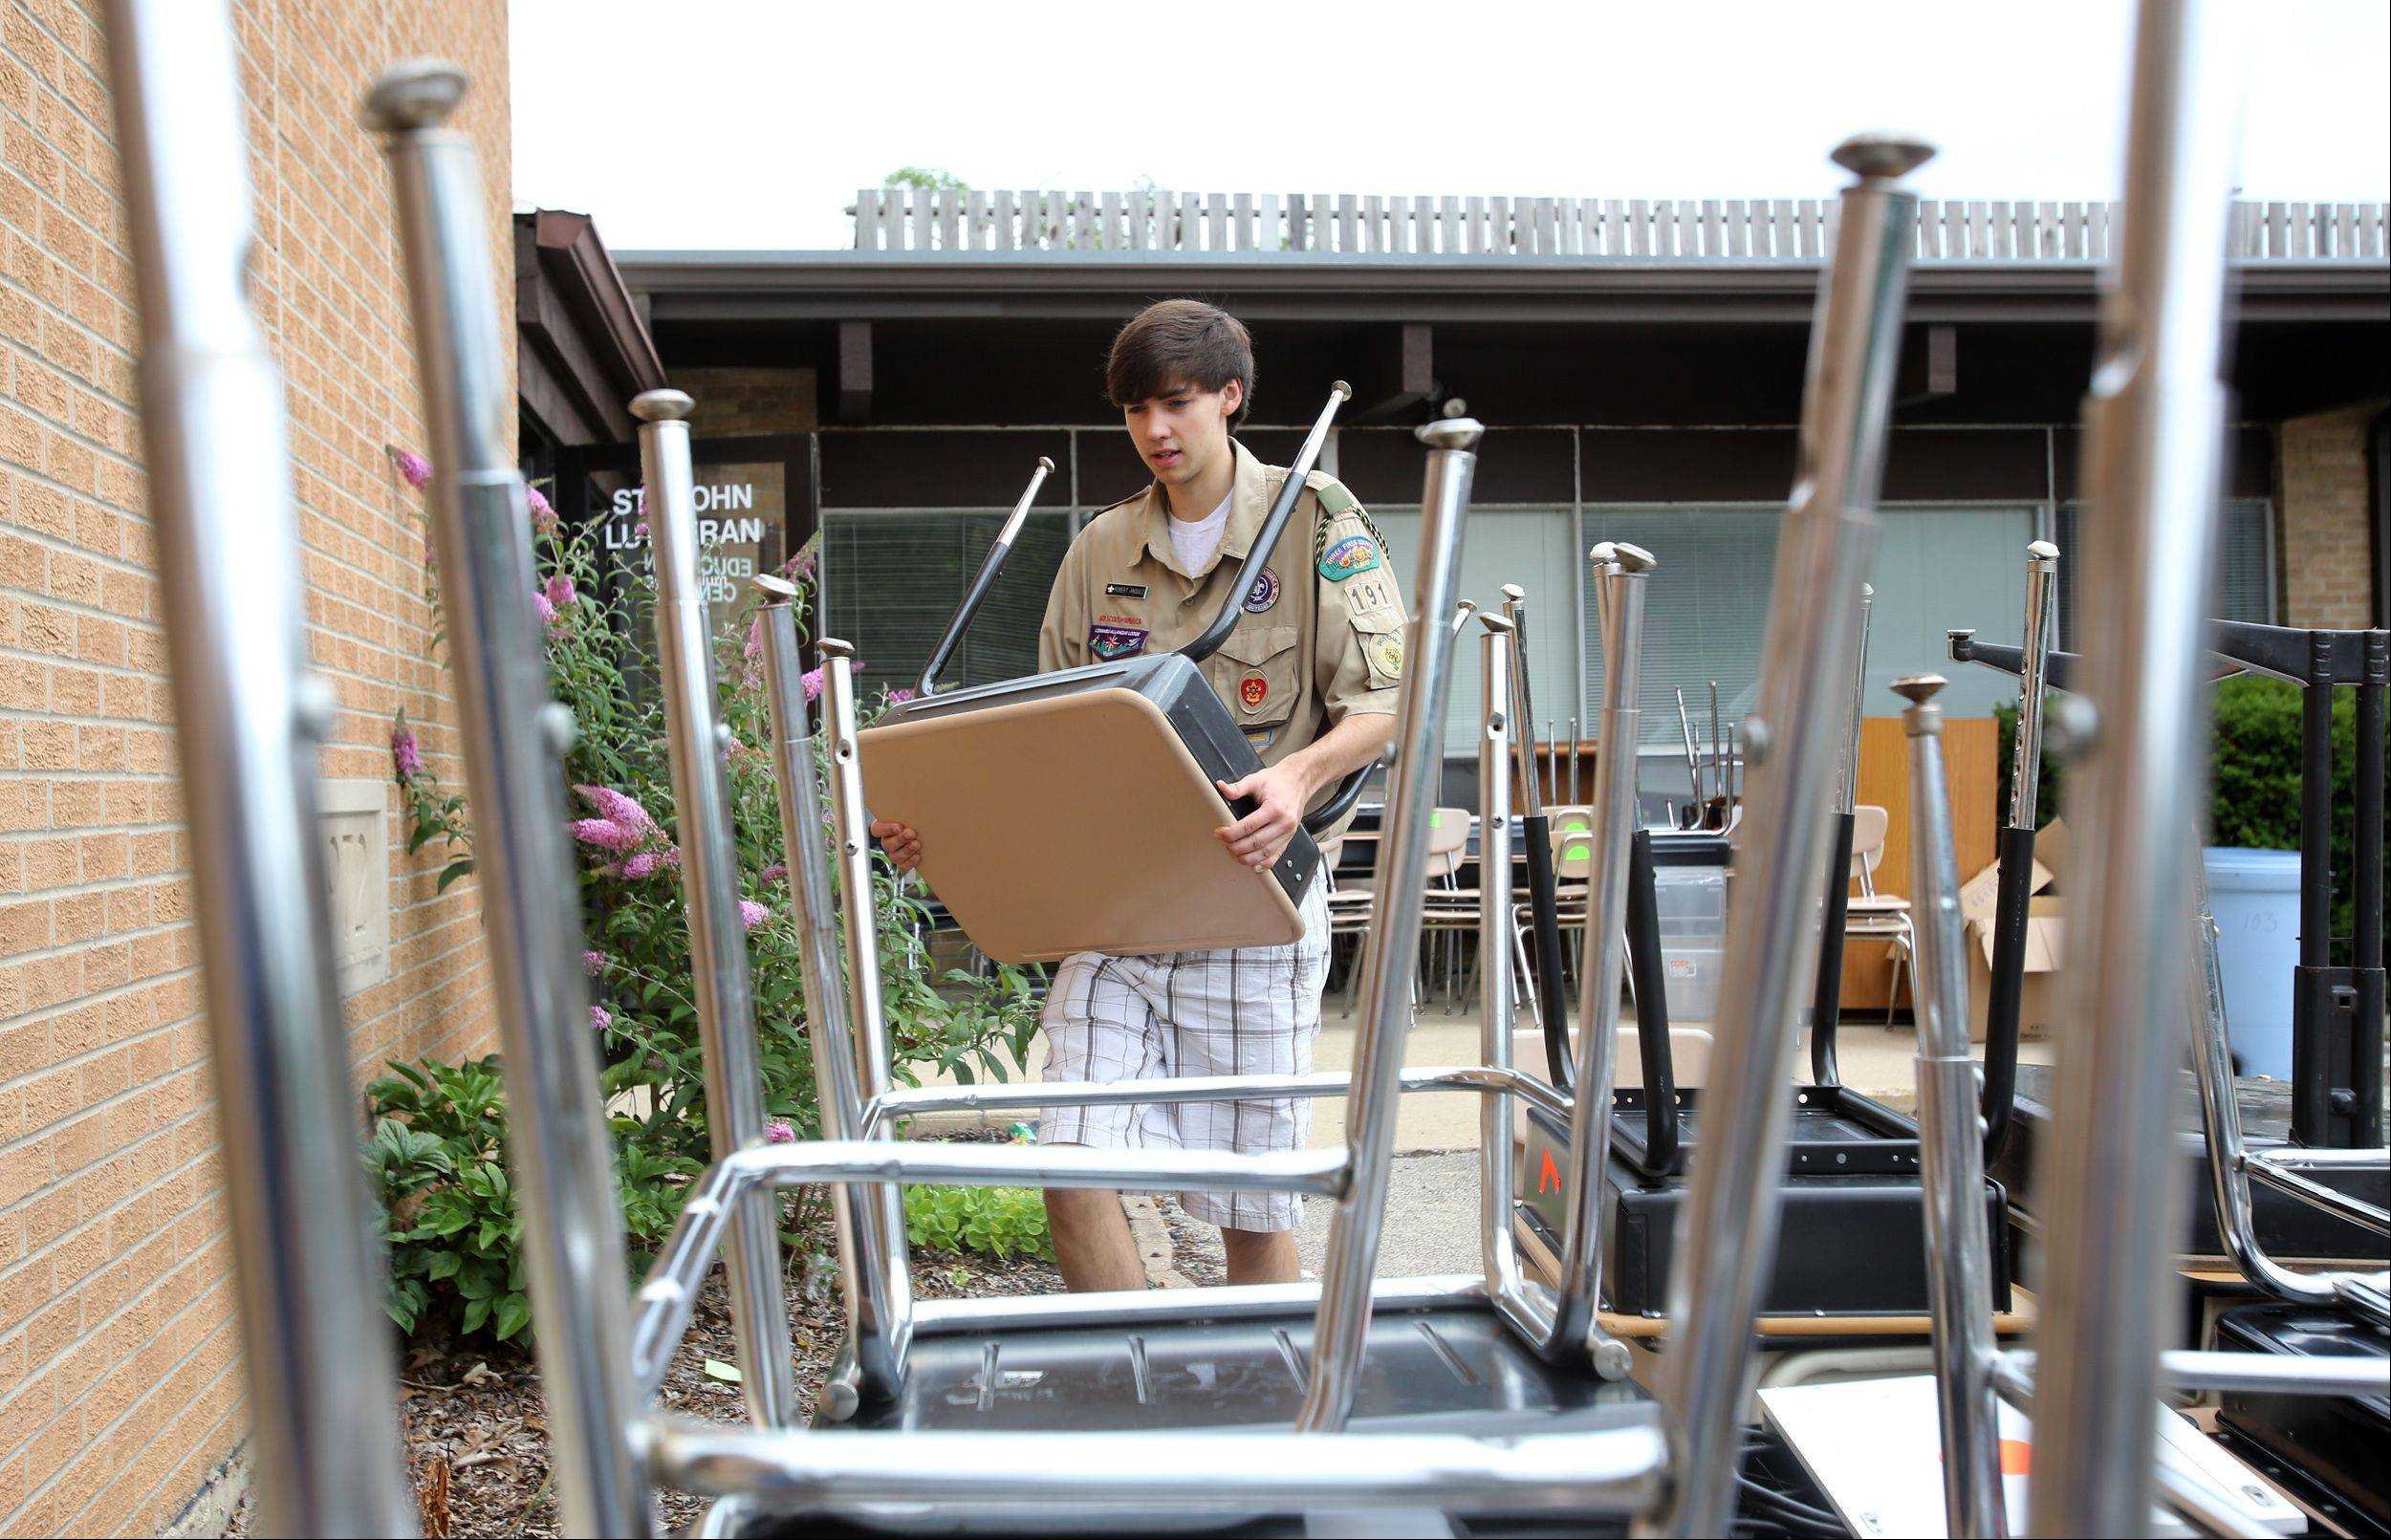 Most of Clare Woods Academy�s desks and furniture have been moved into the new facility at the former St. John�s Lutheran School in downtown Wheaton. Eagle Scout candidate Robert Angiulo, of Troop 191 in Carol Stream, helped with the move over the weekend in preparation for the school�s opening Aug. 22.